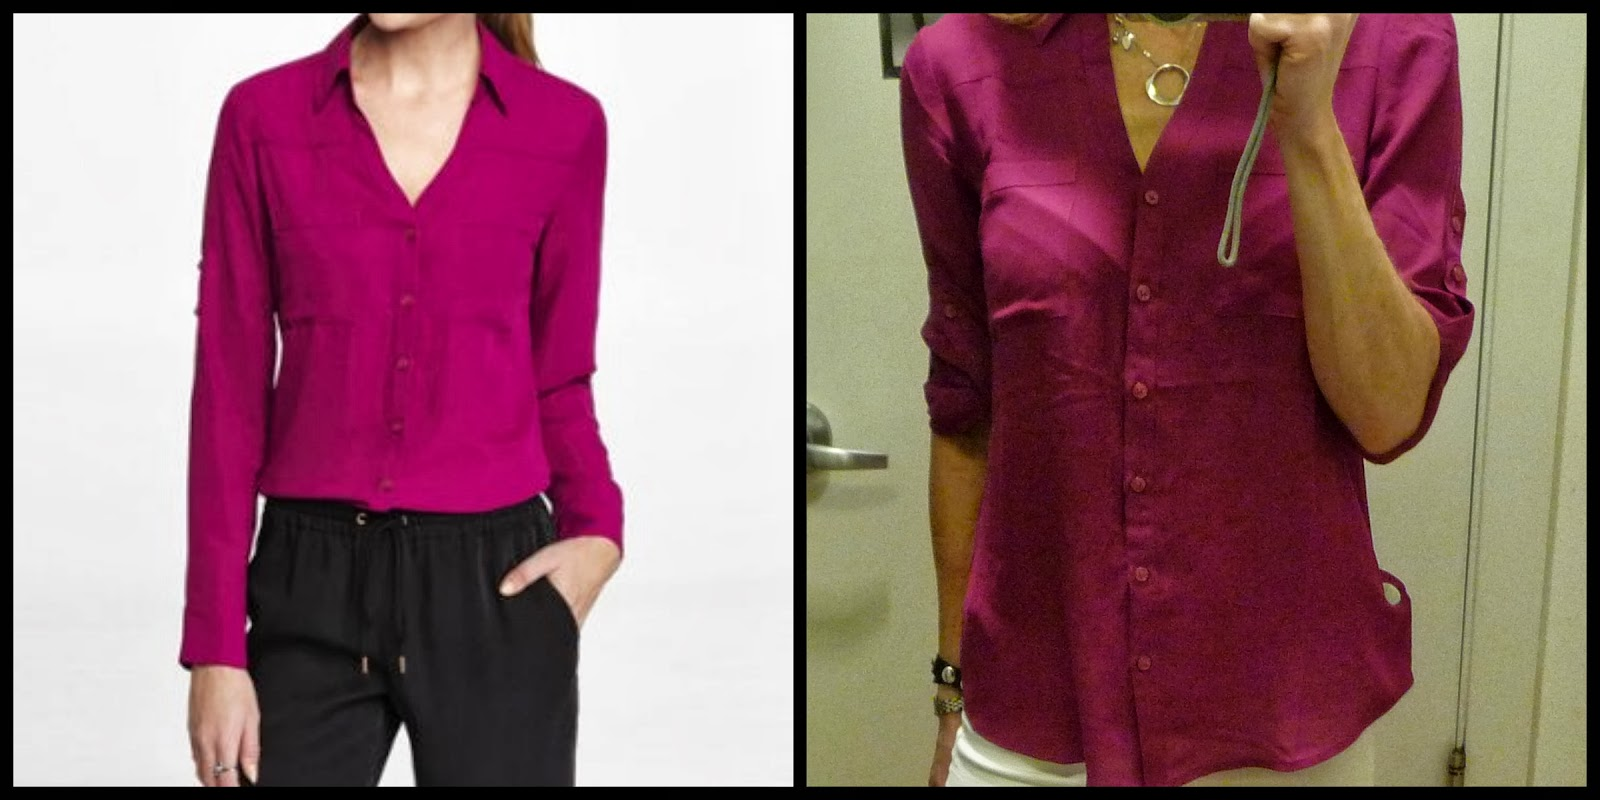 Express Portofino shirt, top, blouse, wild orchid, pink